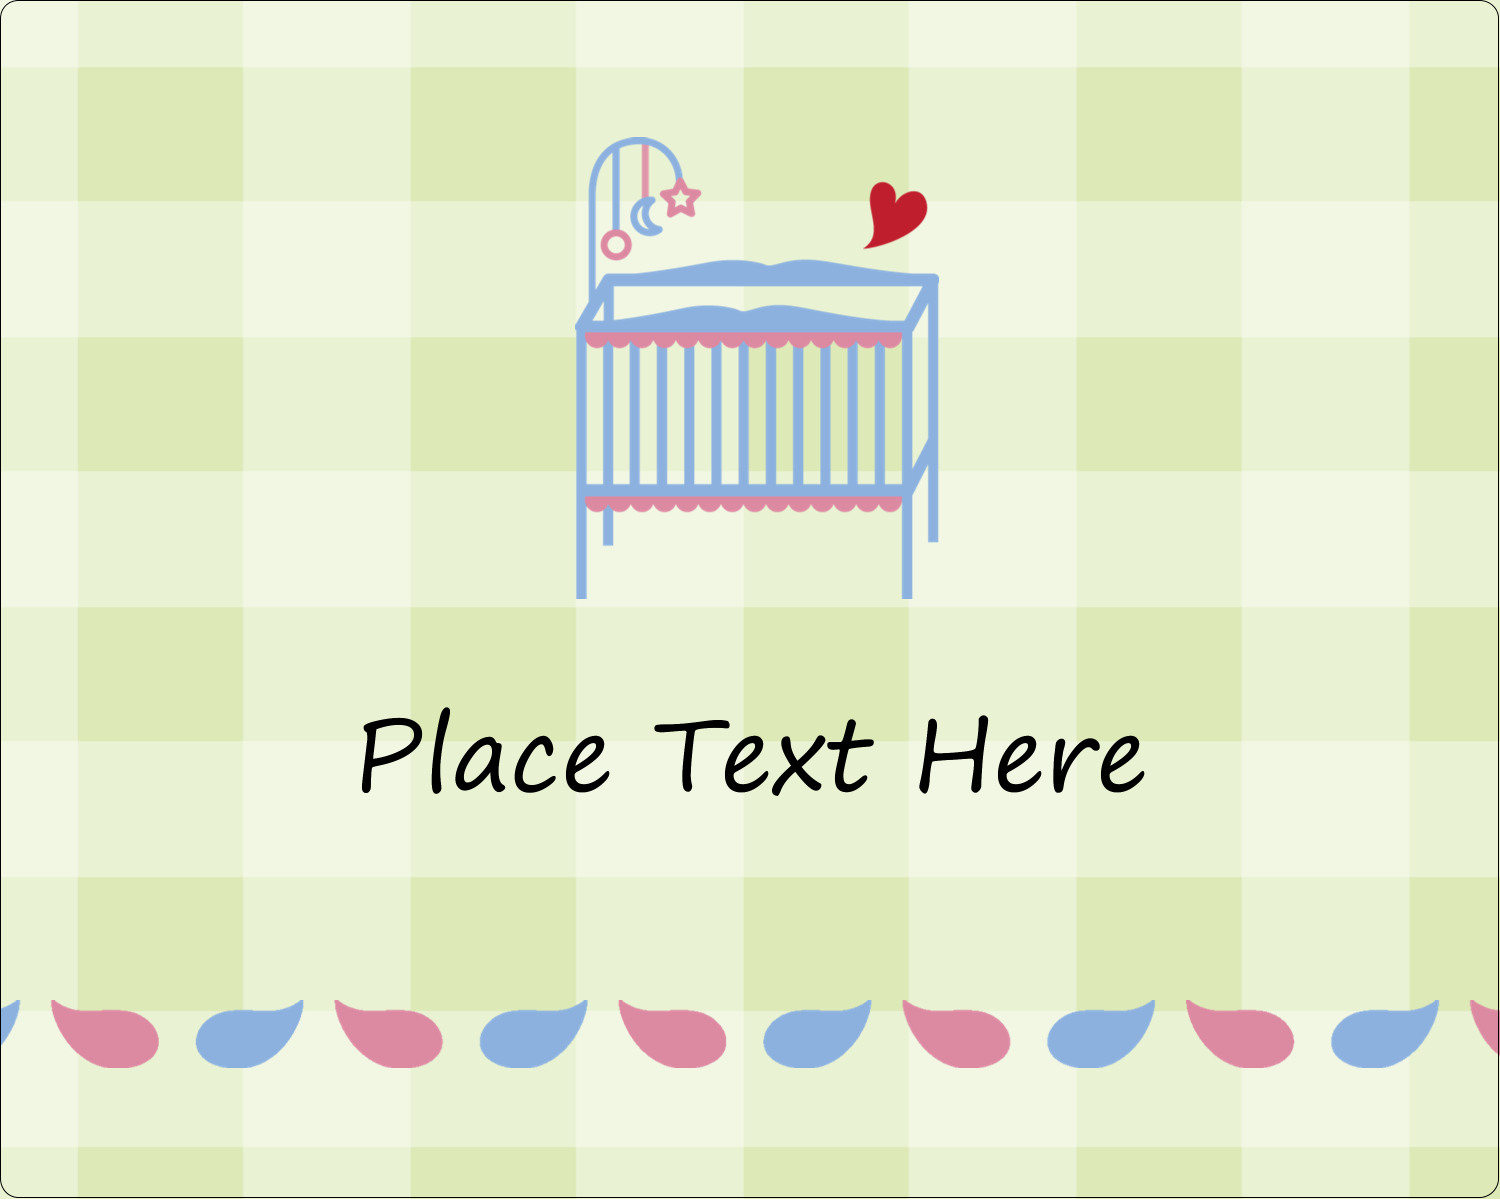 "3"" x 3¾"" Rectangular Label - Baby Crib"